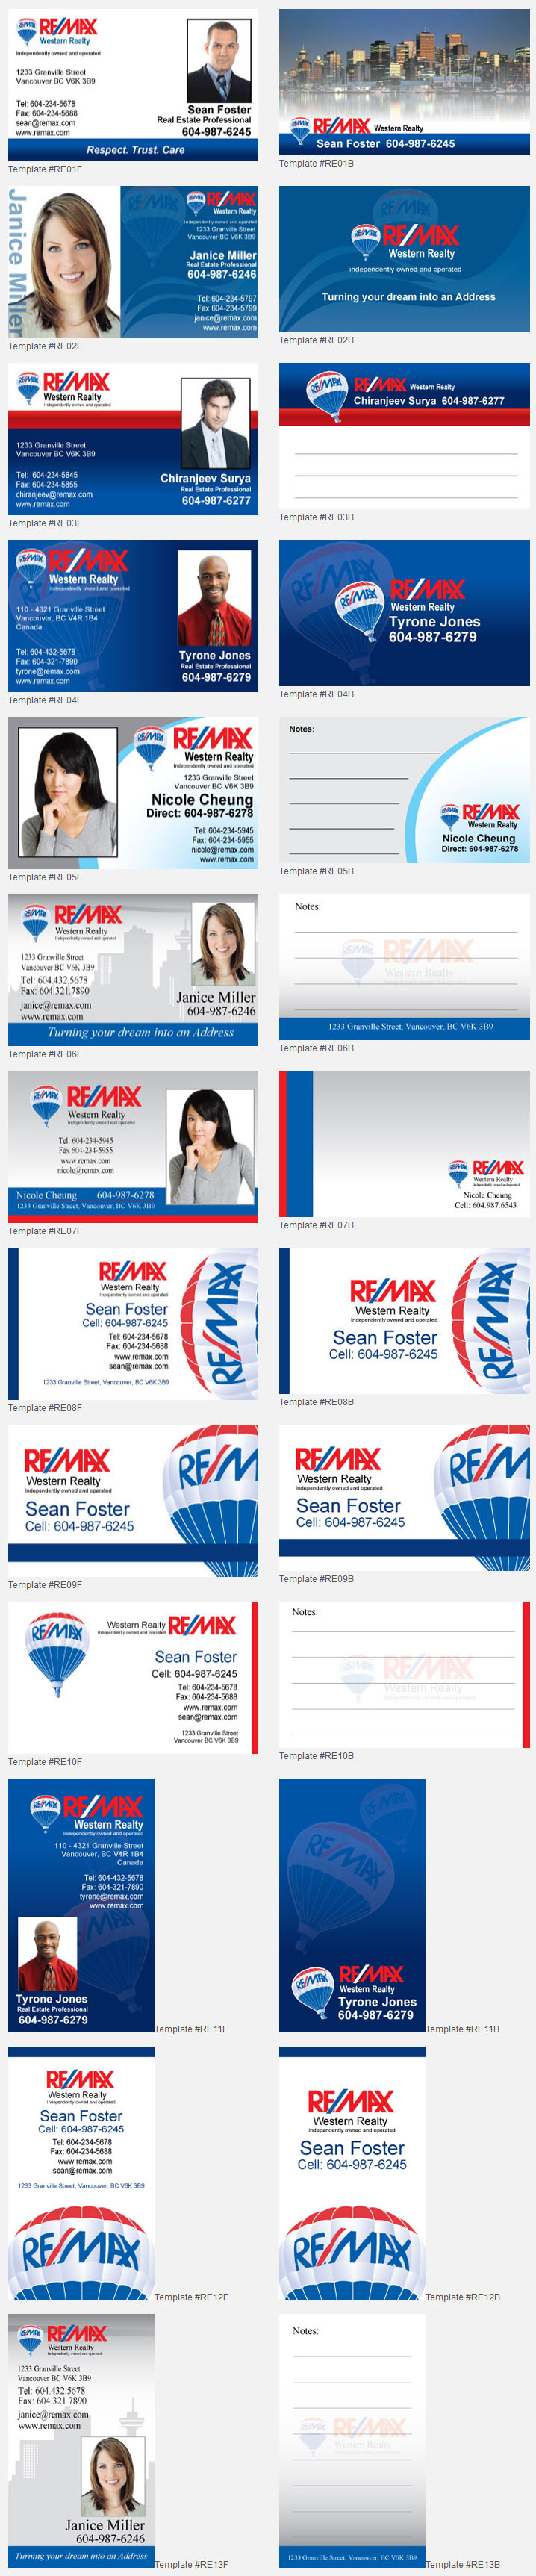 Remax Design Templates Unico Print Media Specialty Marketing